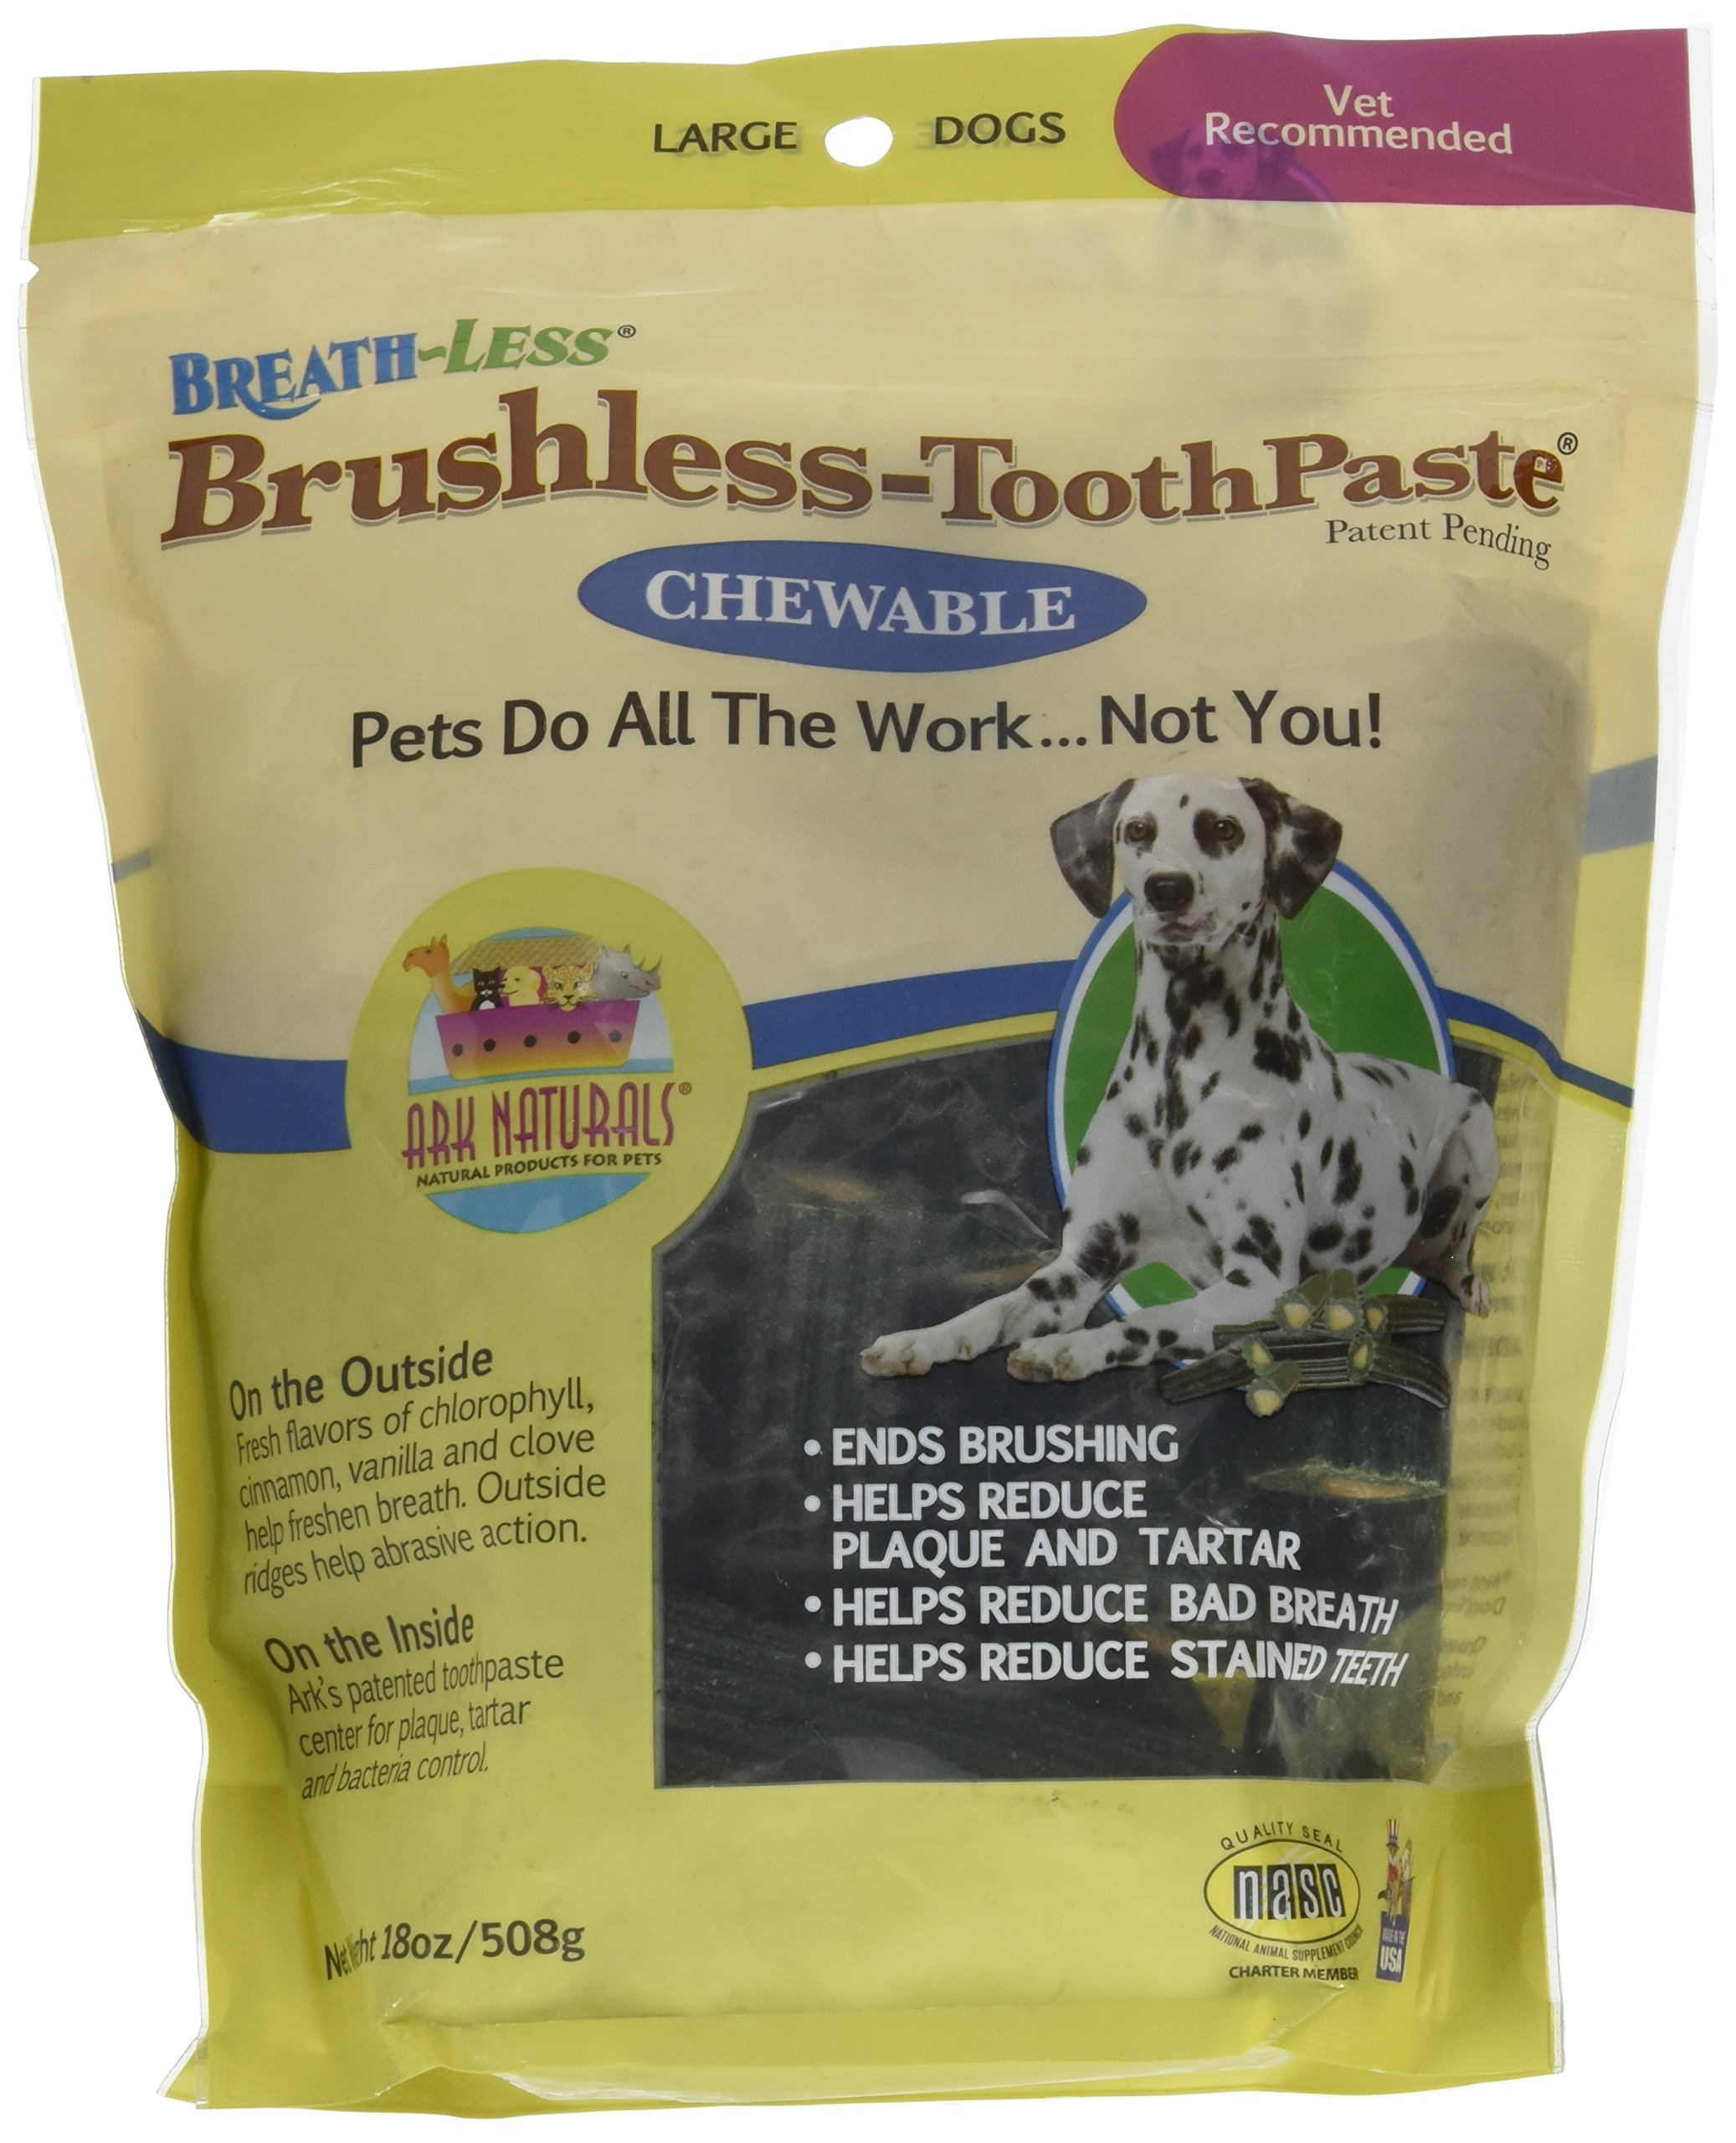 ARK NATURALS Breath-Less Brushless-Toothpaste - Chewable - Large Dogs - 18 oz by ARK NATURALS